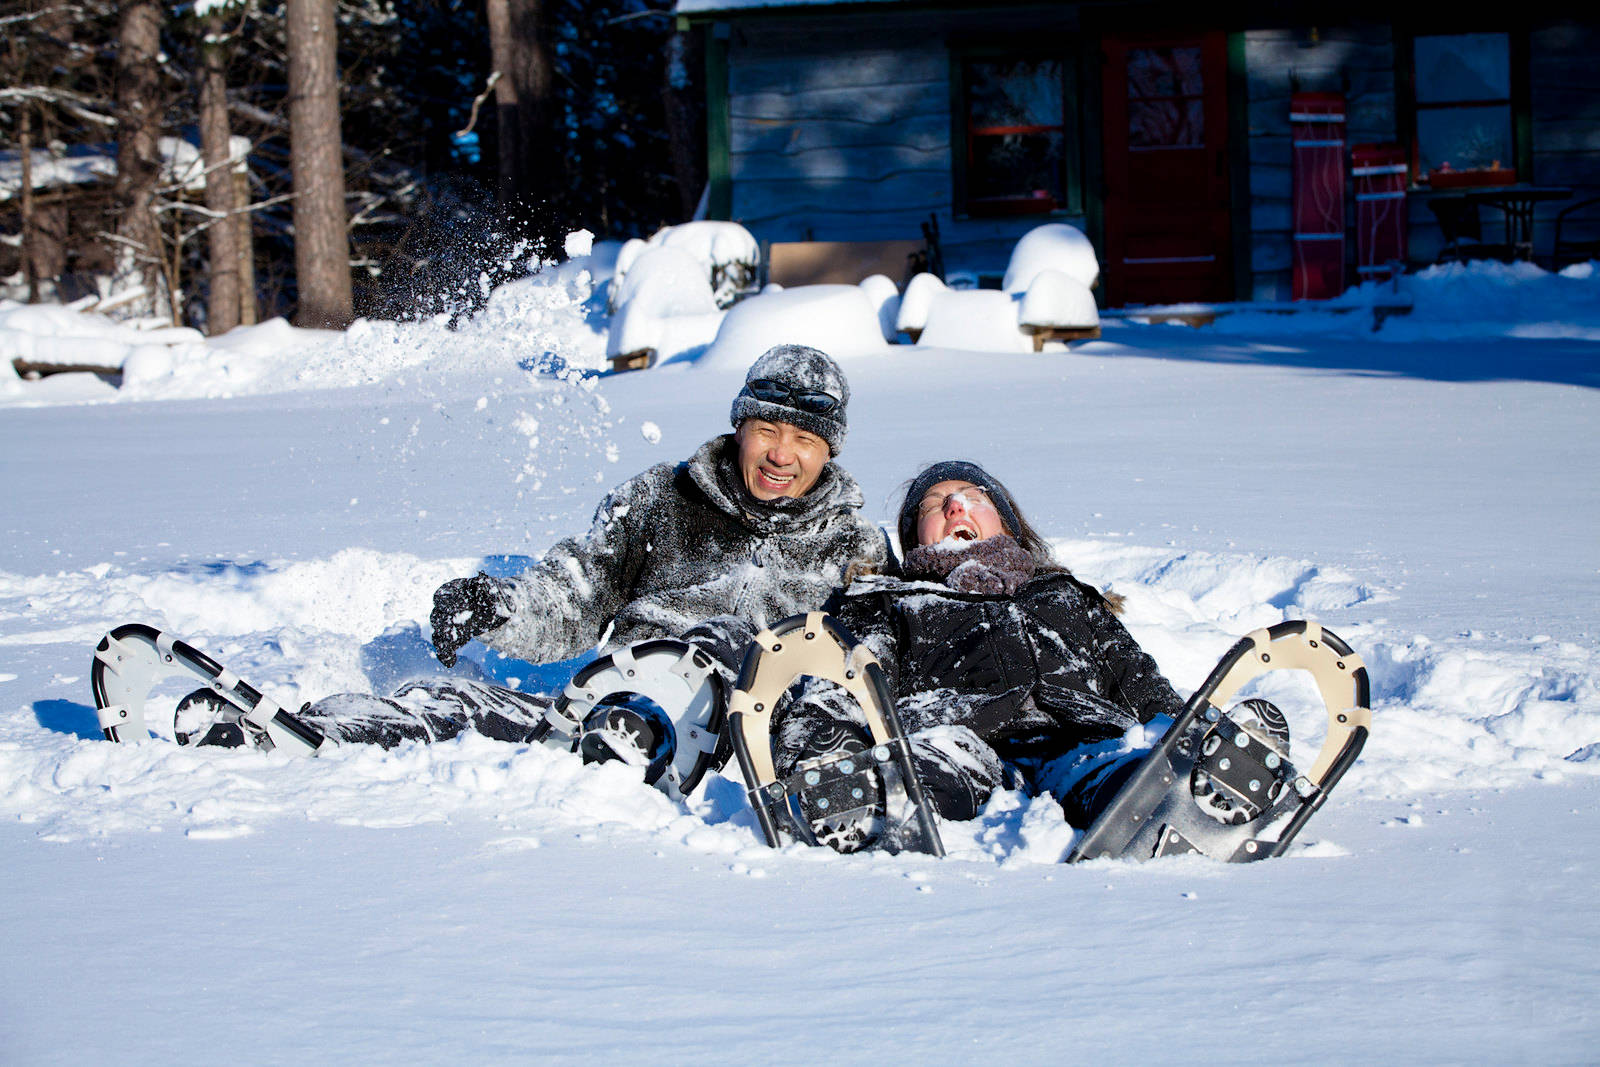 Two people laughing with snoeshoes in the winter at a retreat